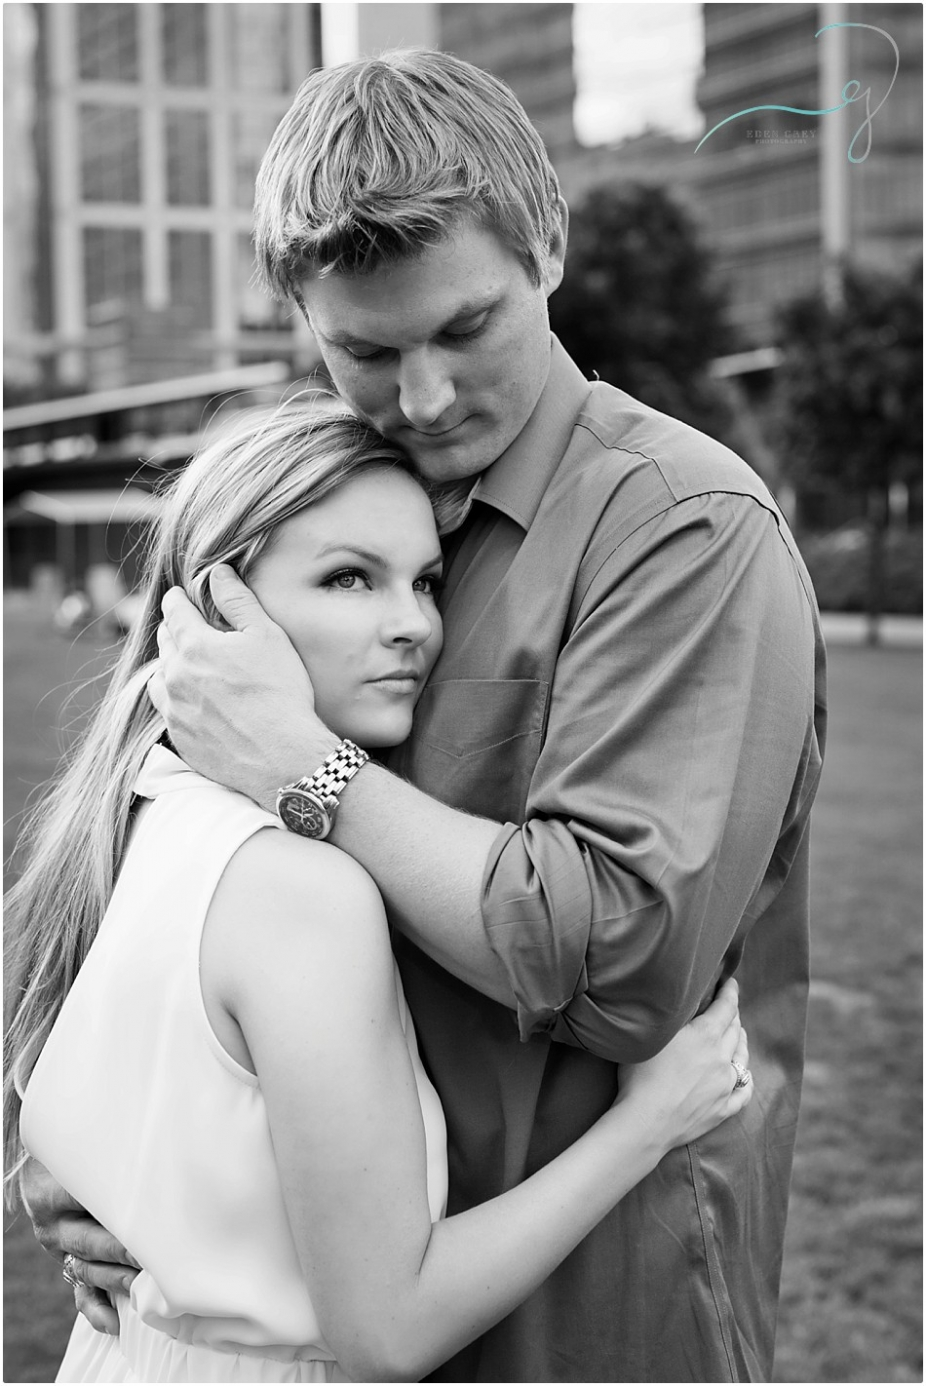 Taking Engagement Pictures in Houston, Texas